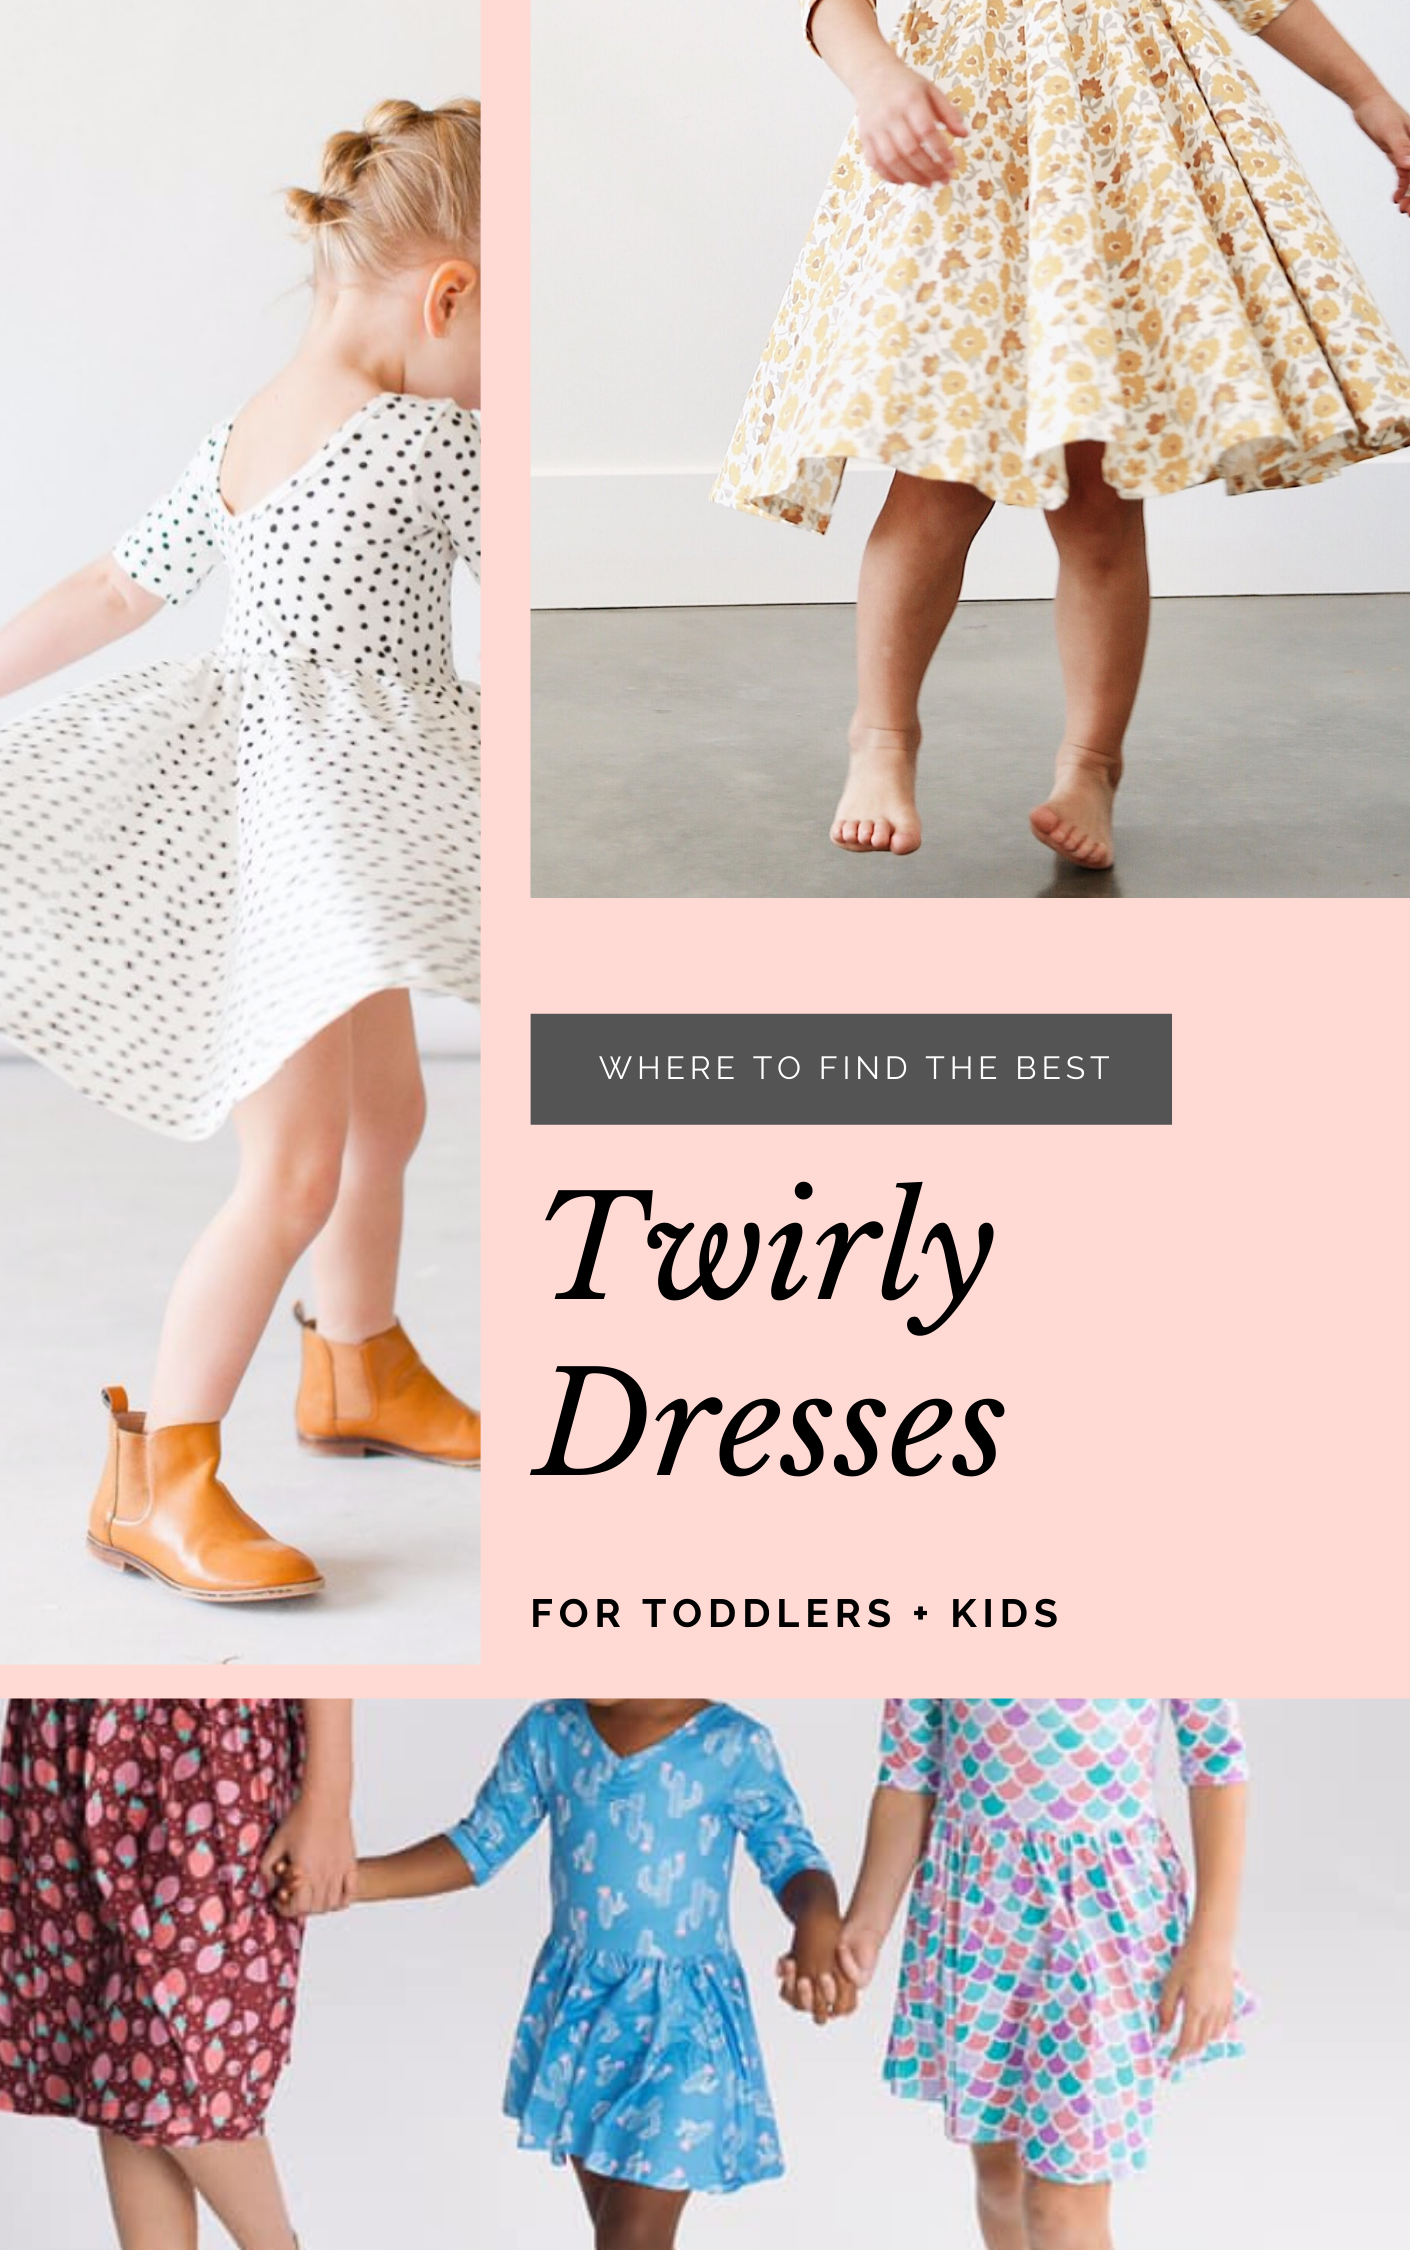 If you have a little girl who loves a great twirly dress, this post is for you! Sharing where to find the very best twirl dresses; a.k.a., skater dresses or swing dresses, for kids. | glitterinc.com | @glitterinc